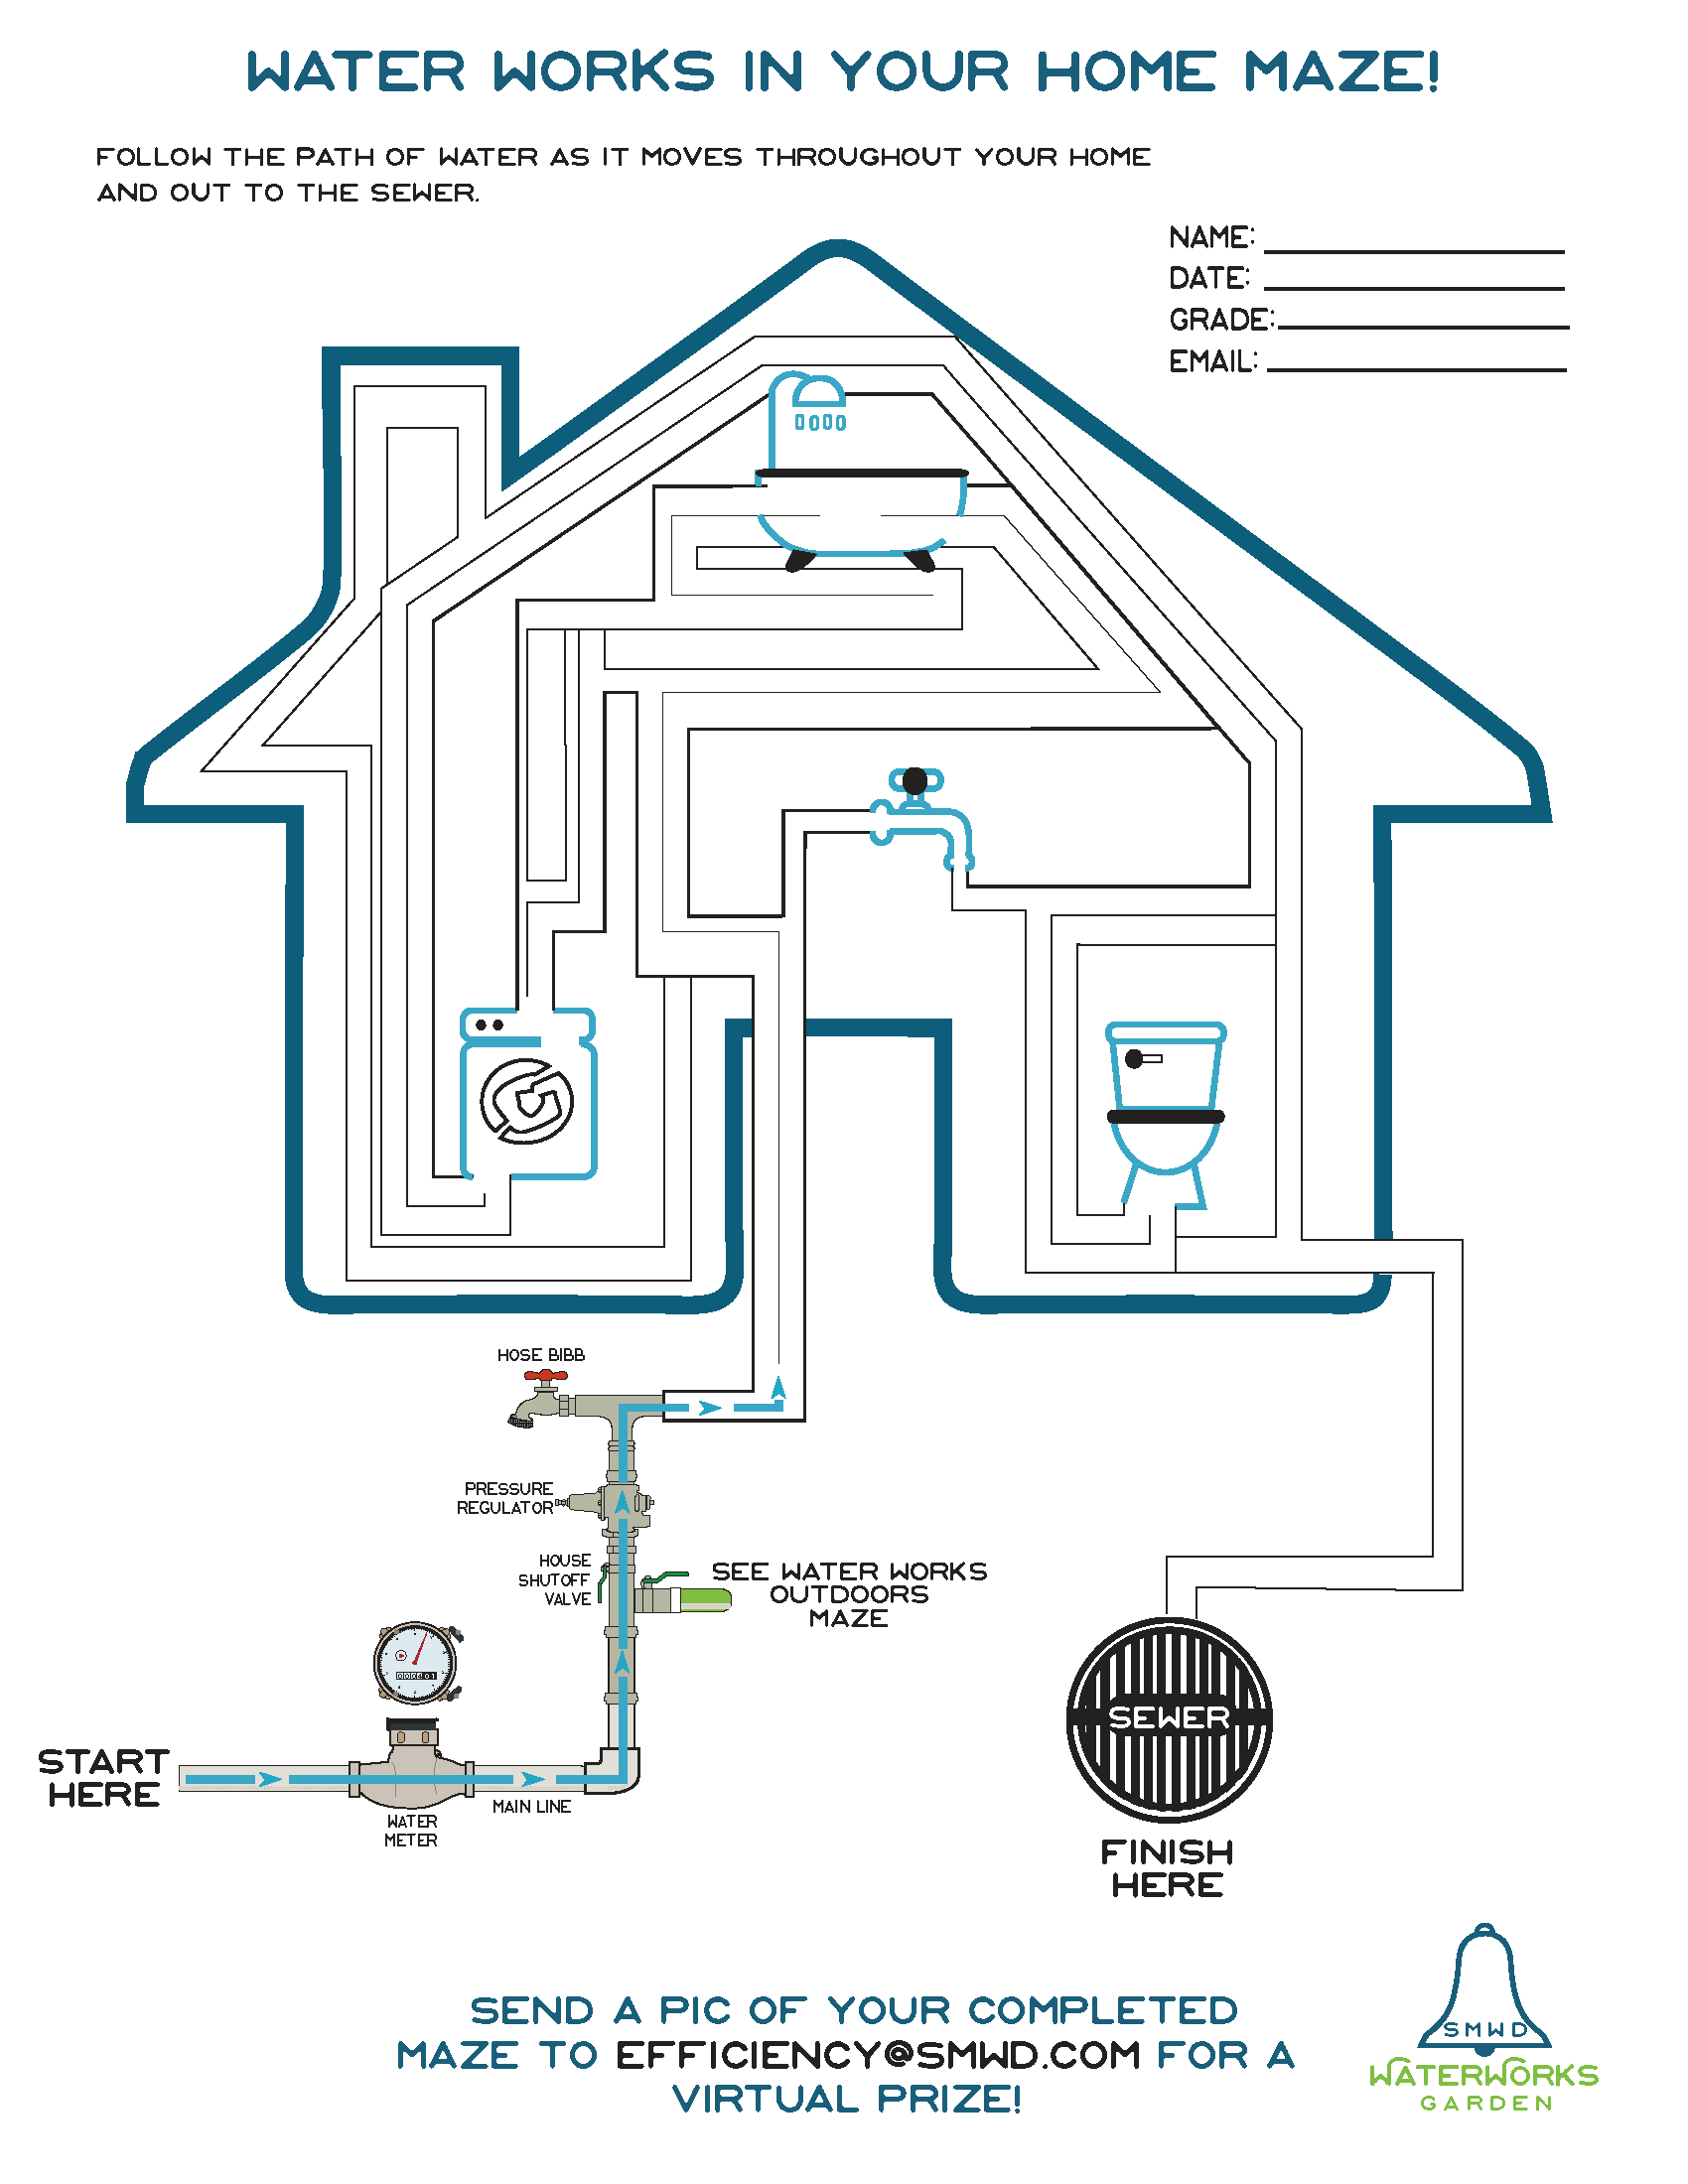 Water Works In Your Home Maze